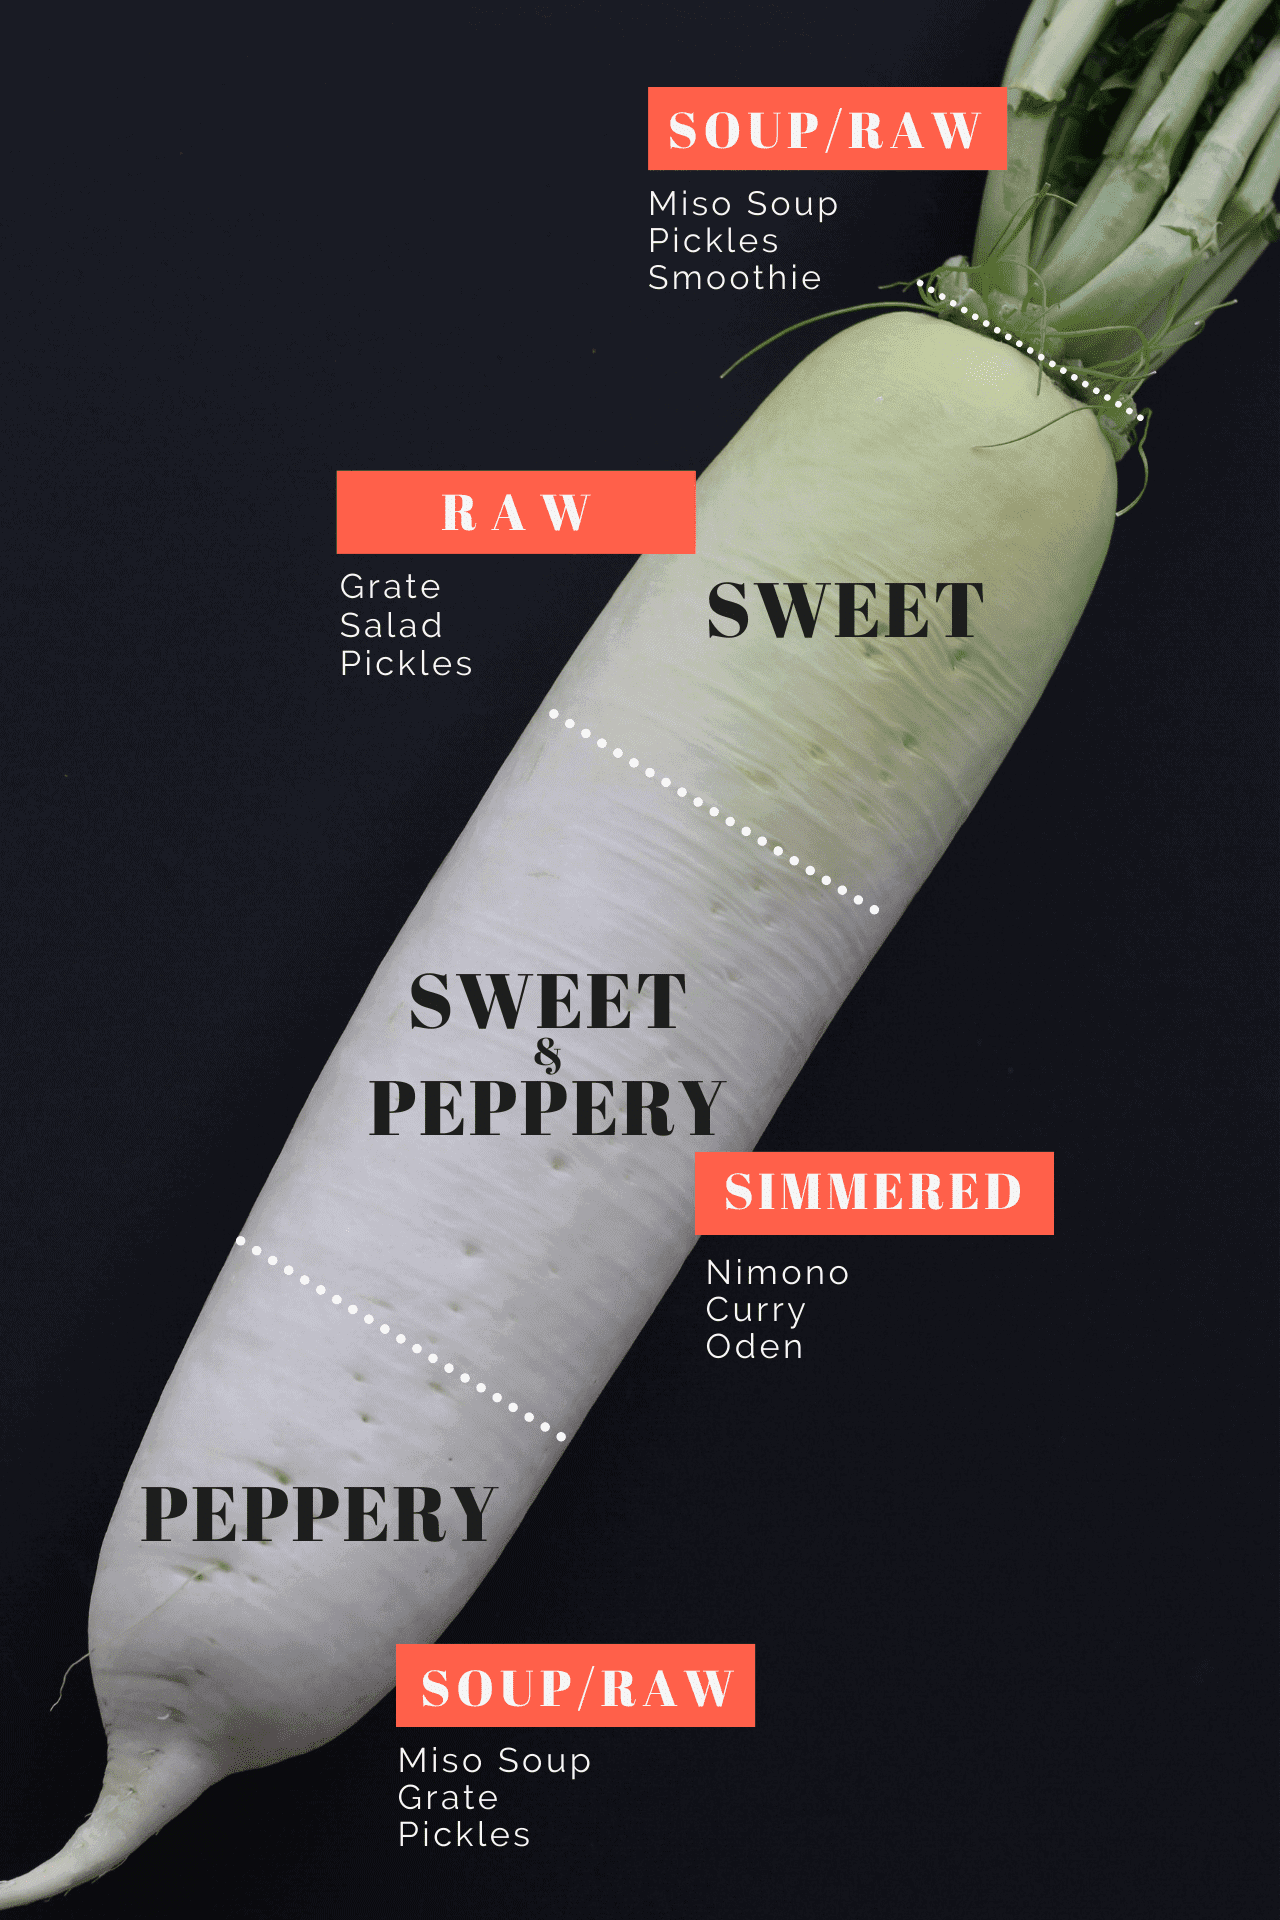 a Japanese daikon radish with some text about the taste